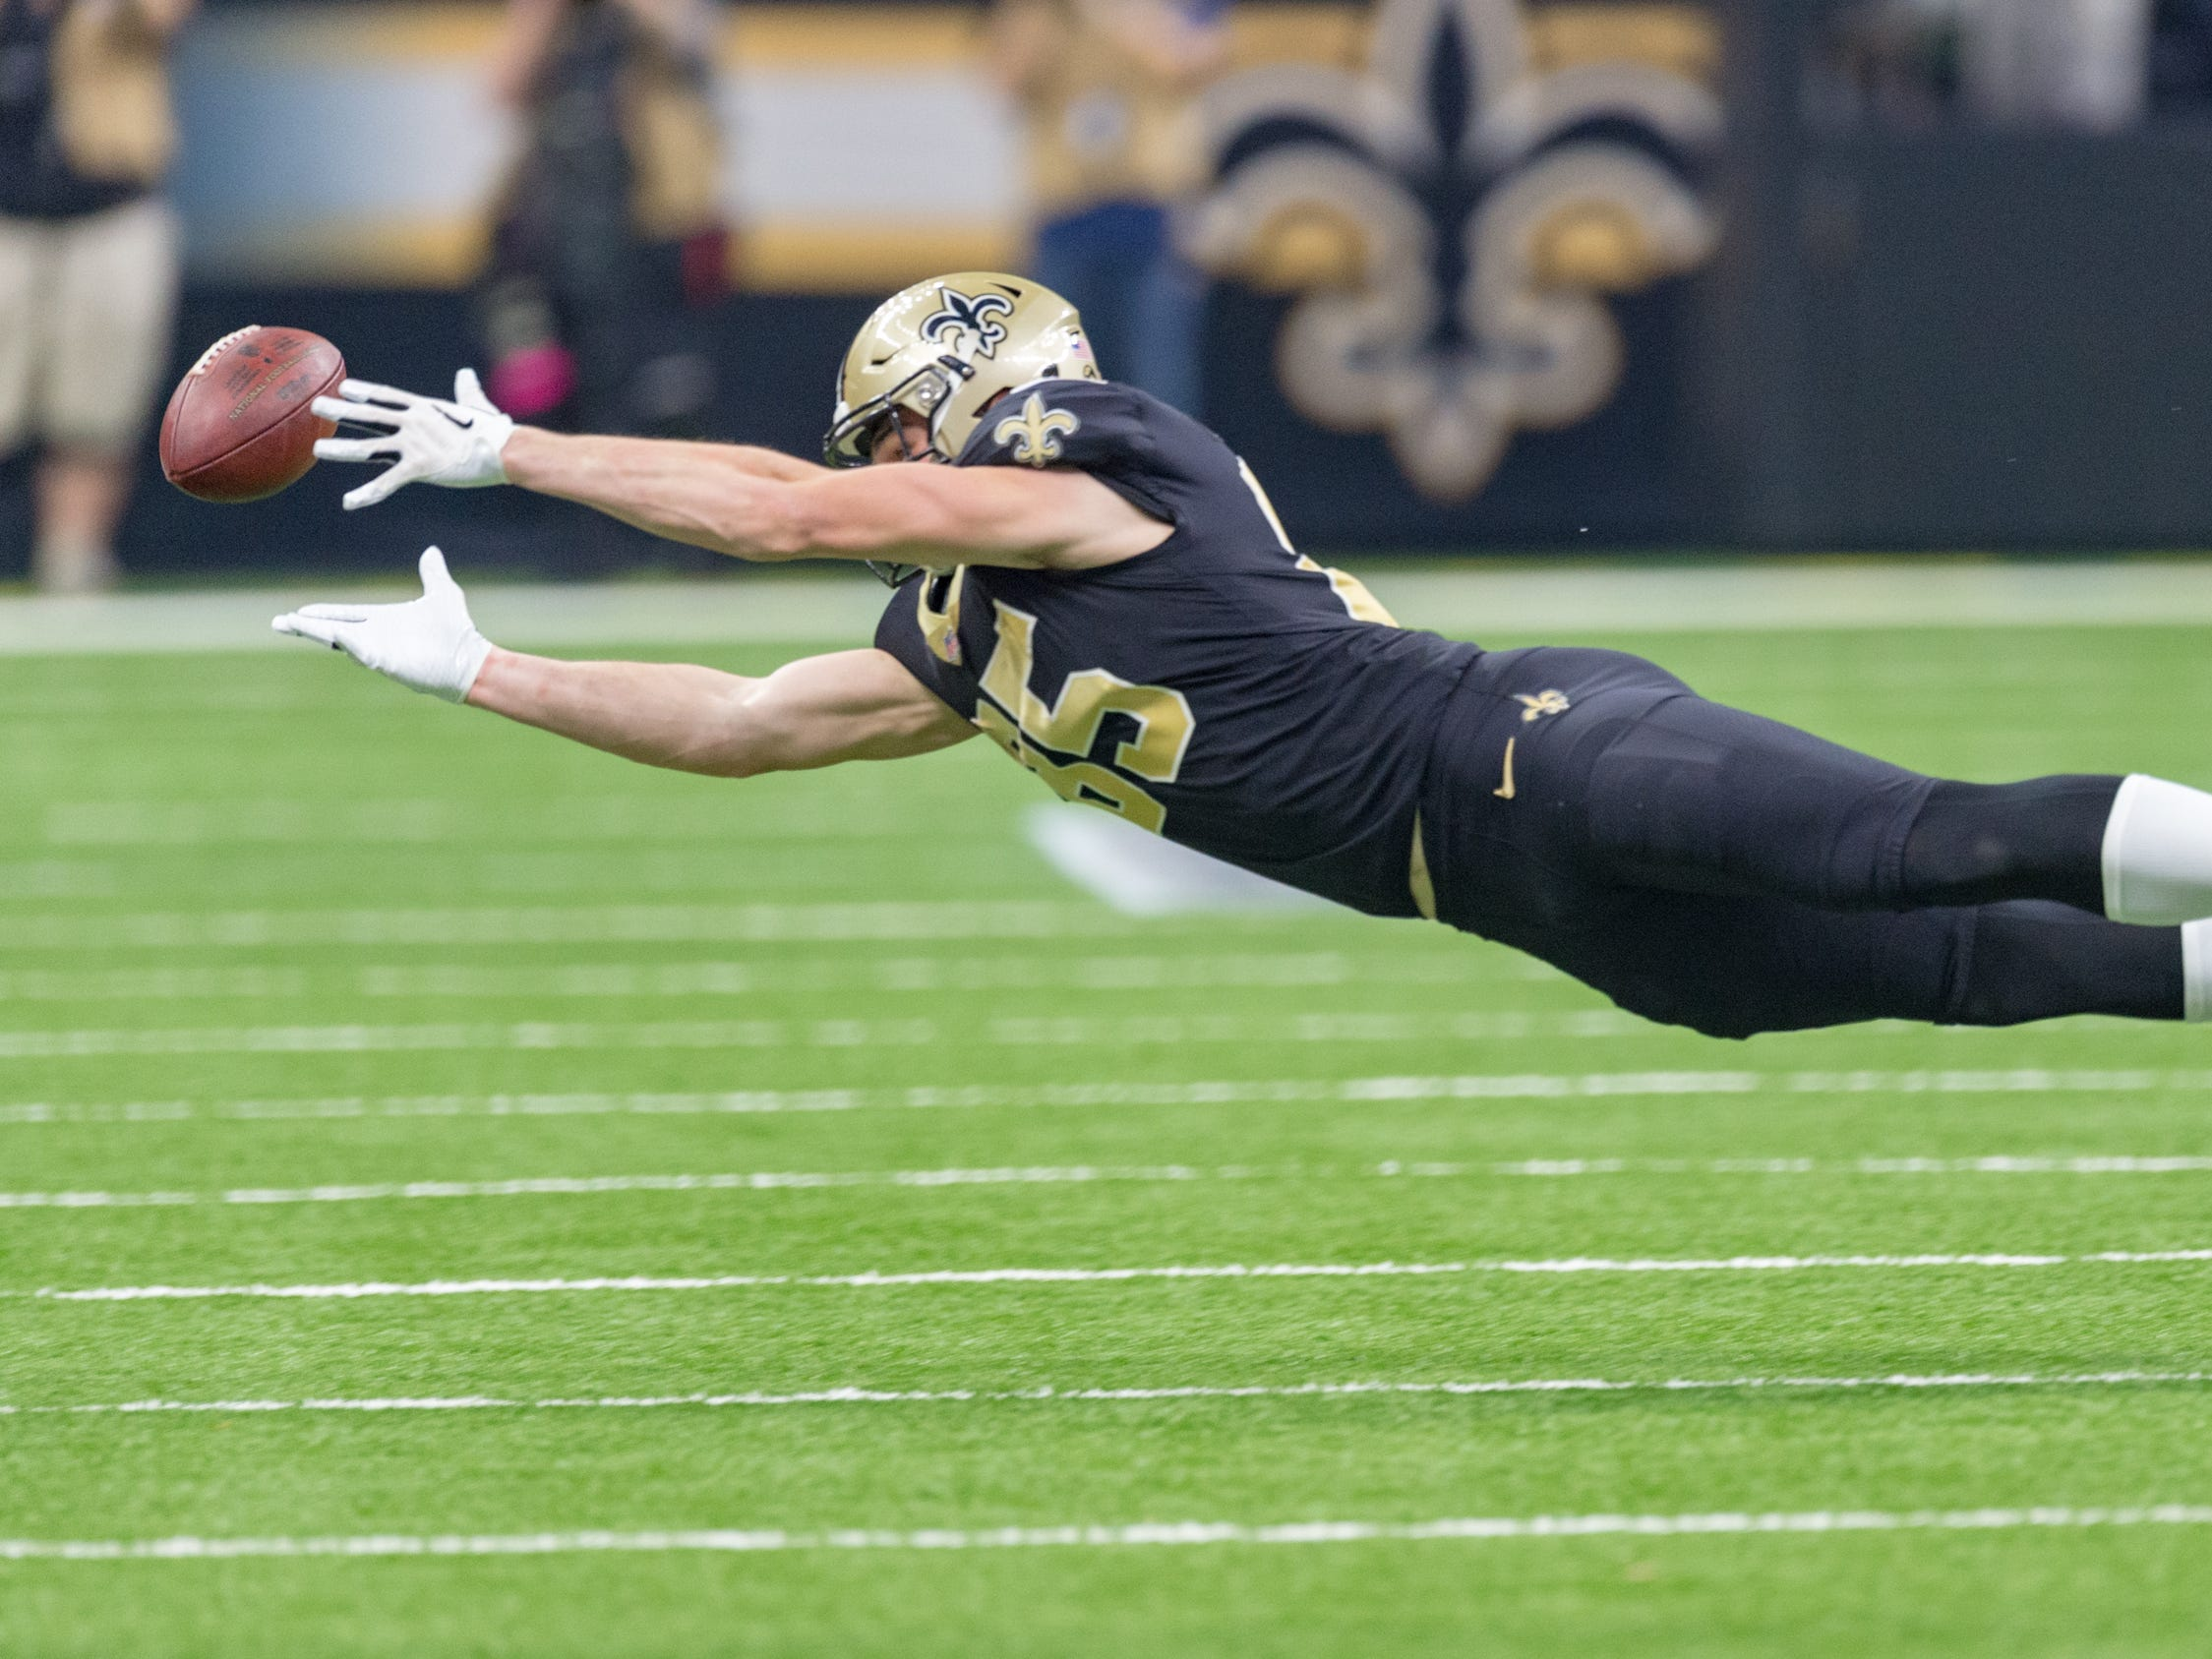 Saints tight end Dan Arnold dives for a ball during the NFC Championship playoff football game between the New Orleans Saints and the Los Angeles Rams at the Mercedes-Benz Superdome in New Orleans. Sunday, Jan. 20, 2019.